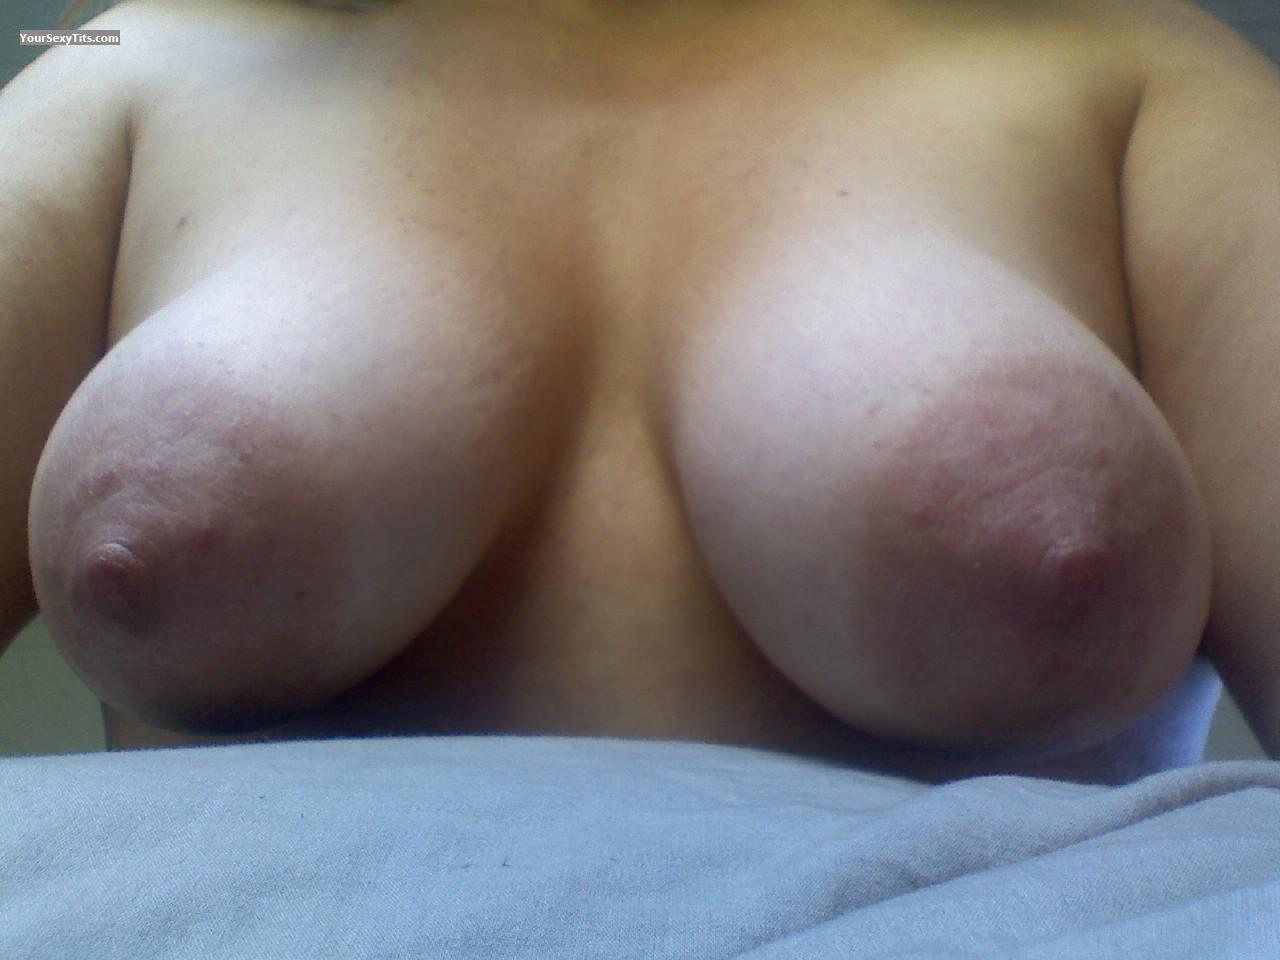 Tit Flash: My Big Tits (Selfie) - Hangin Out from United States